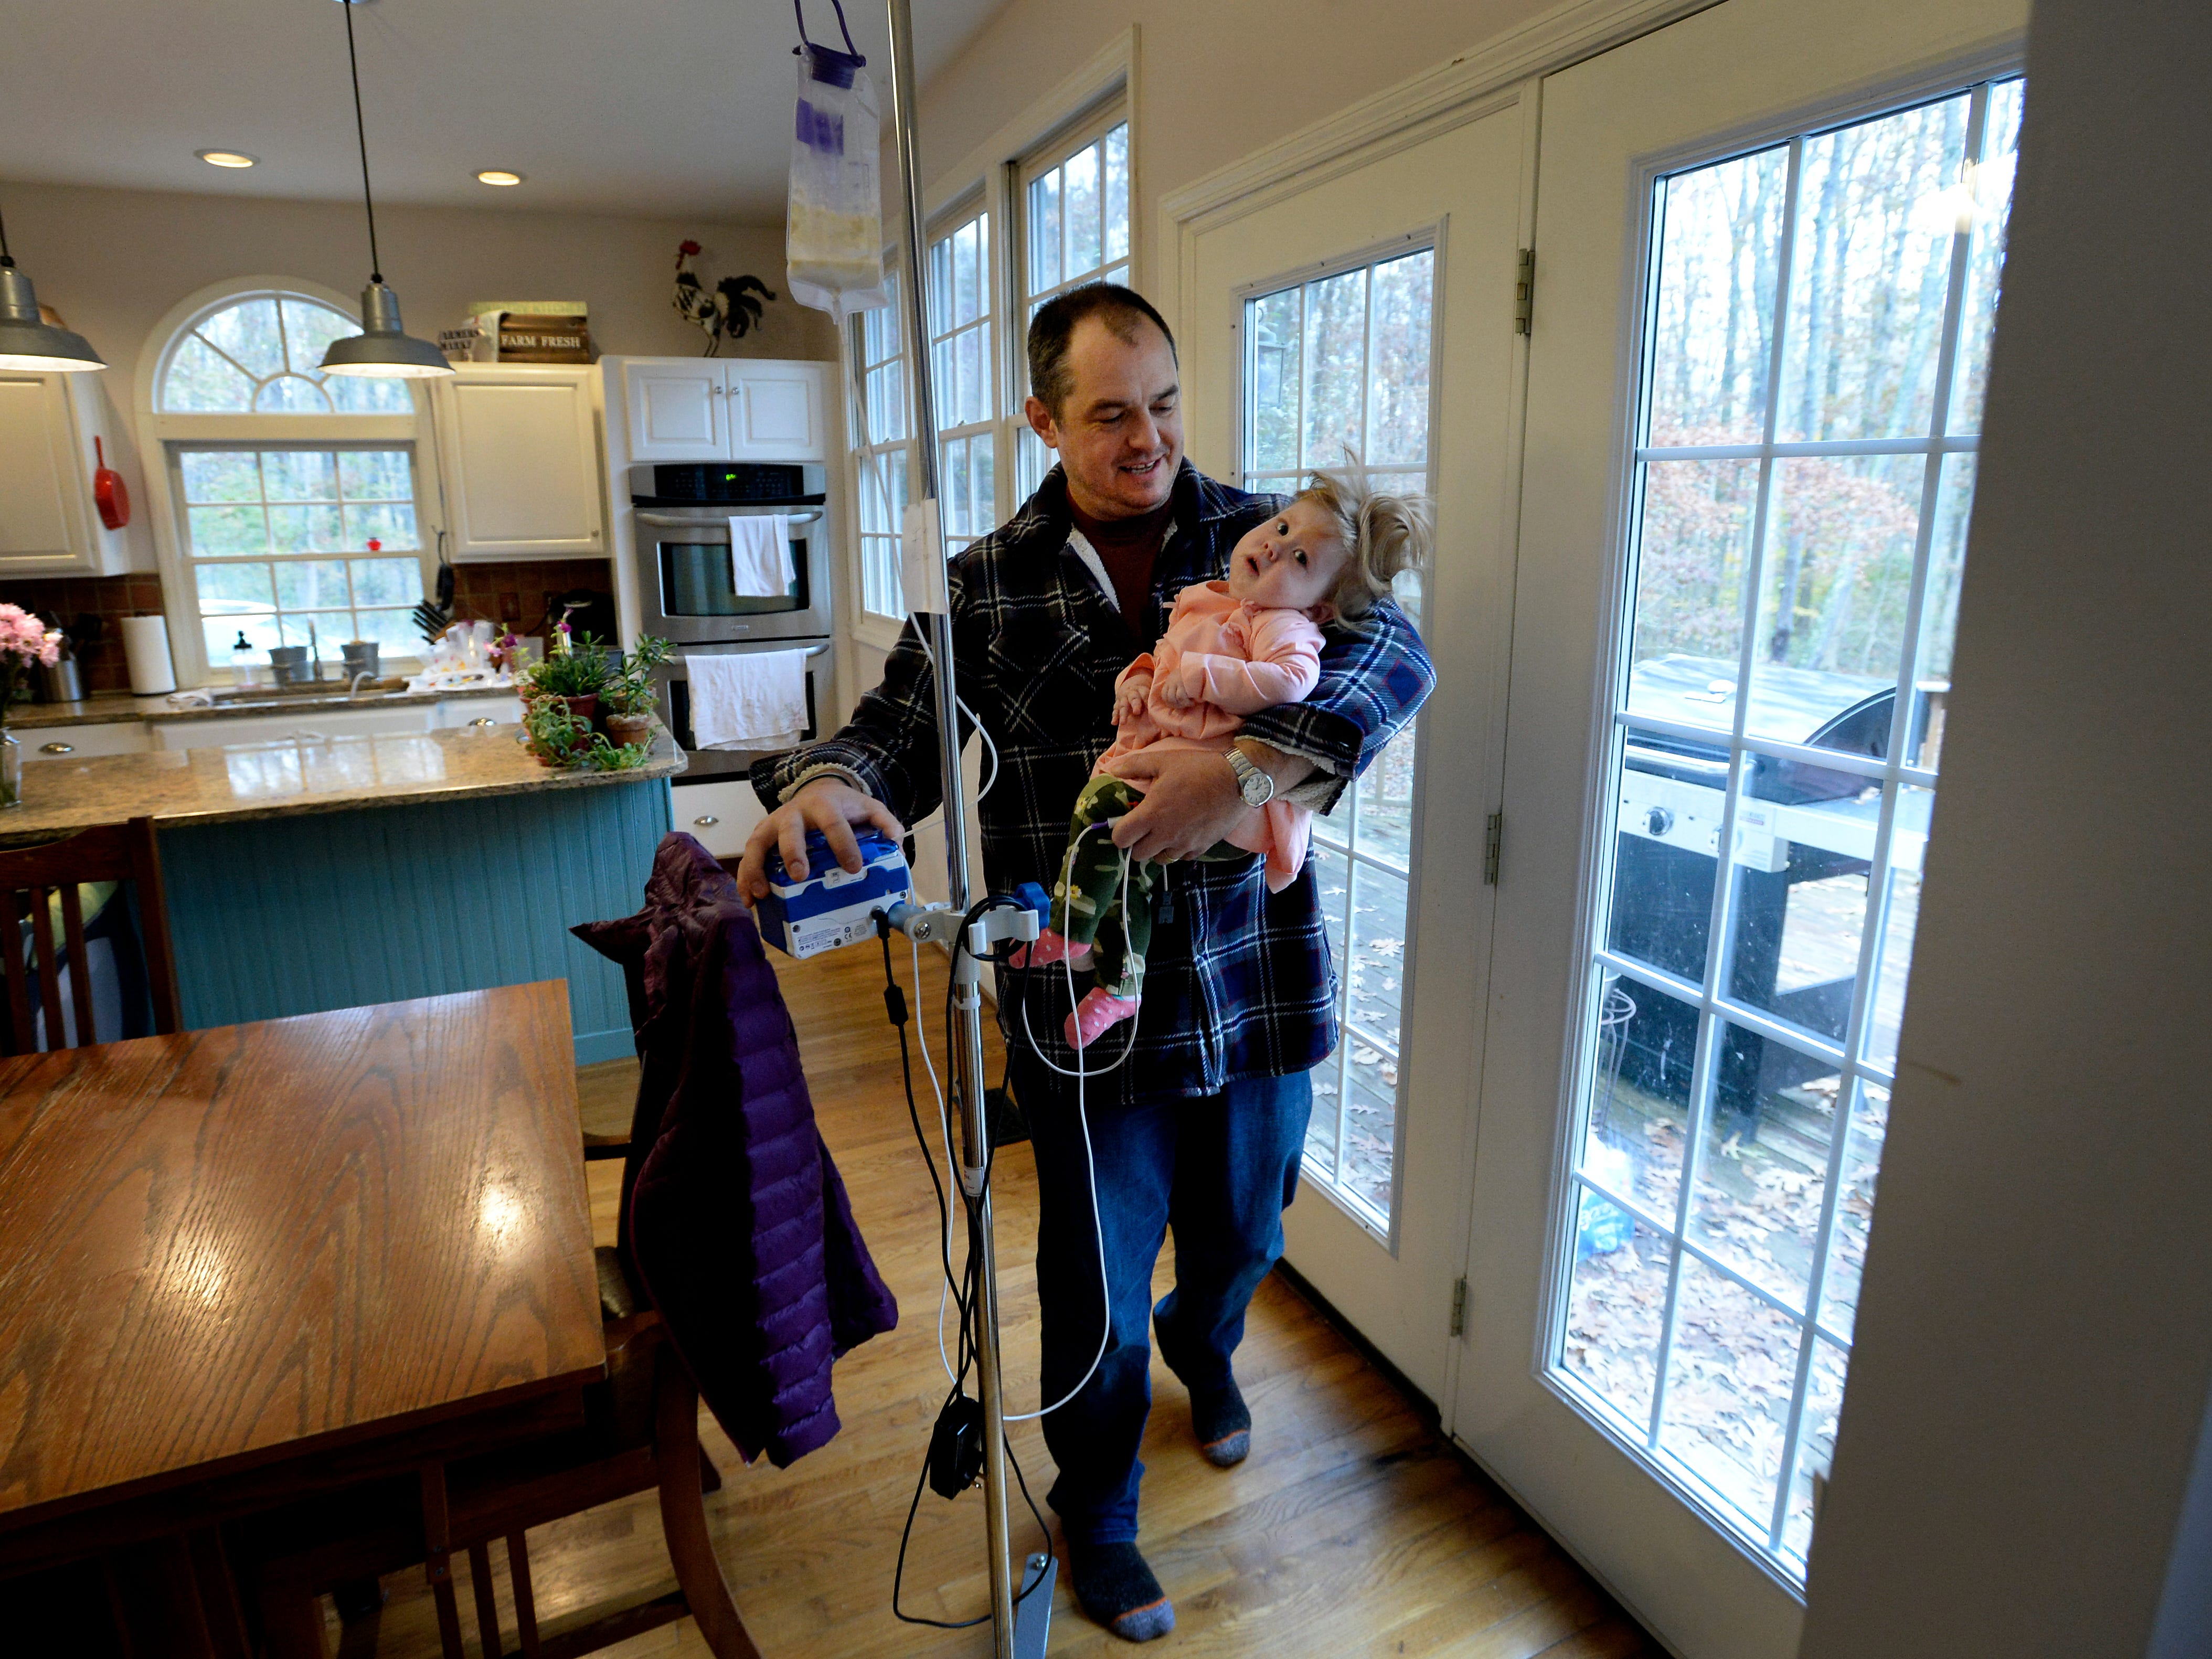 Adam Kauffmann walks with his daughter Adelaide and her monitor on Tuesday, Nov. 13, 2018, in Burns, Tenn.